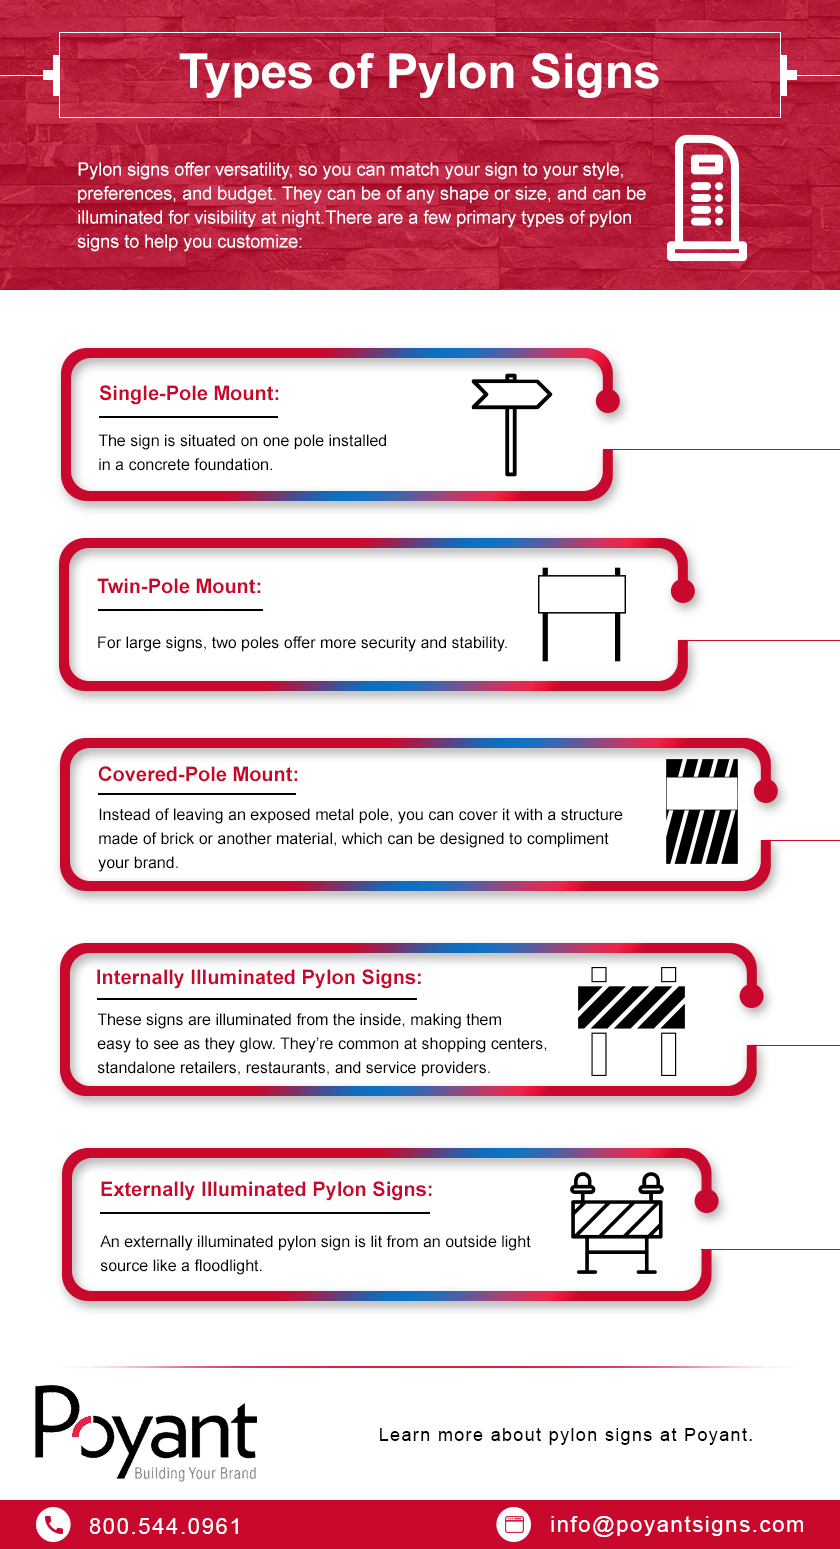 Infographic describing different types of pylon signs